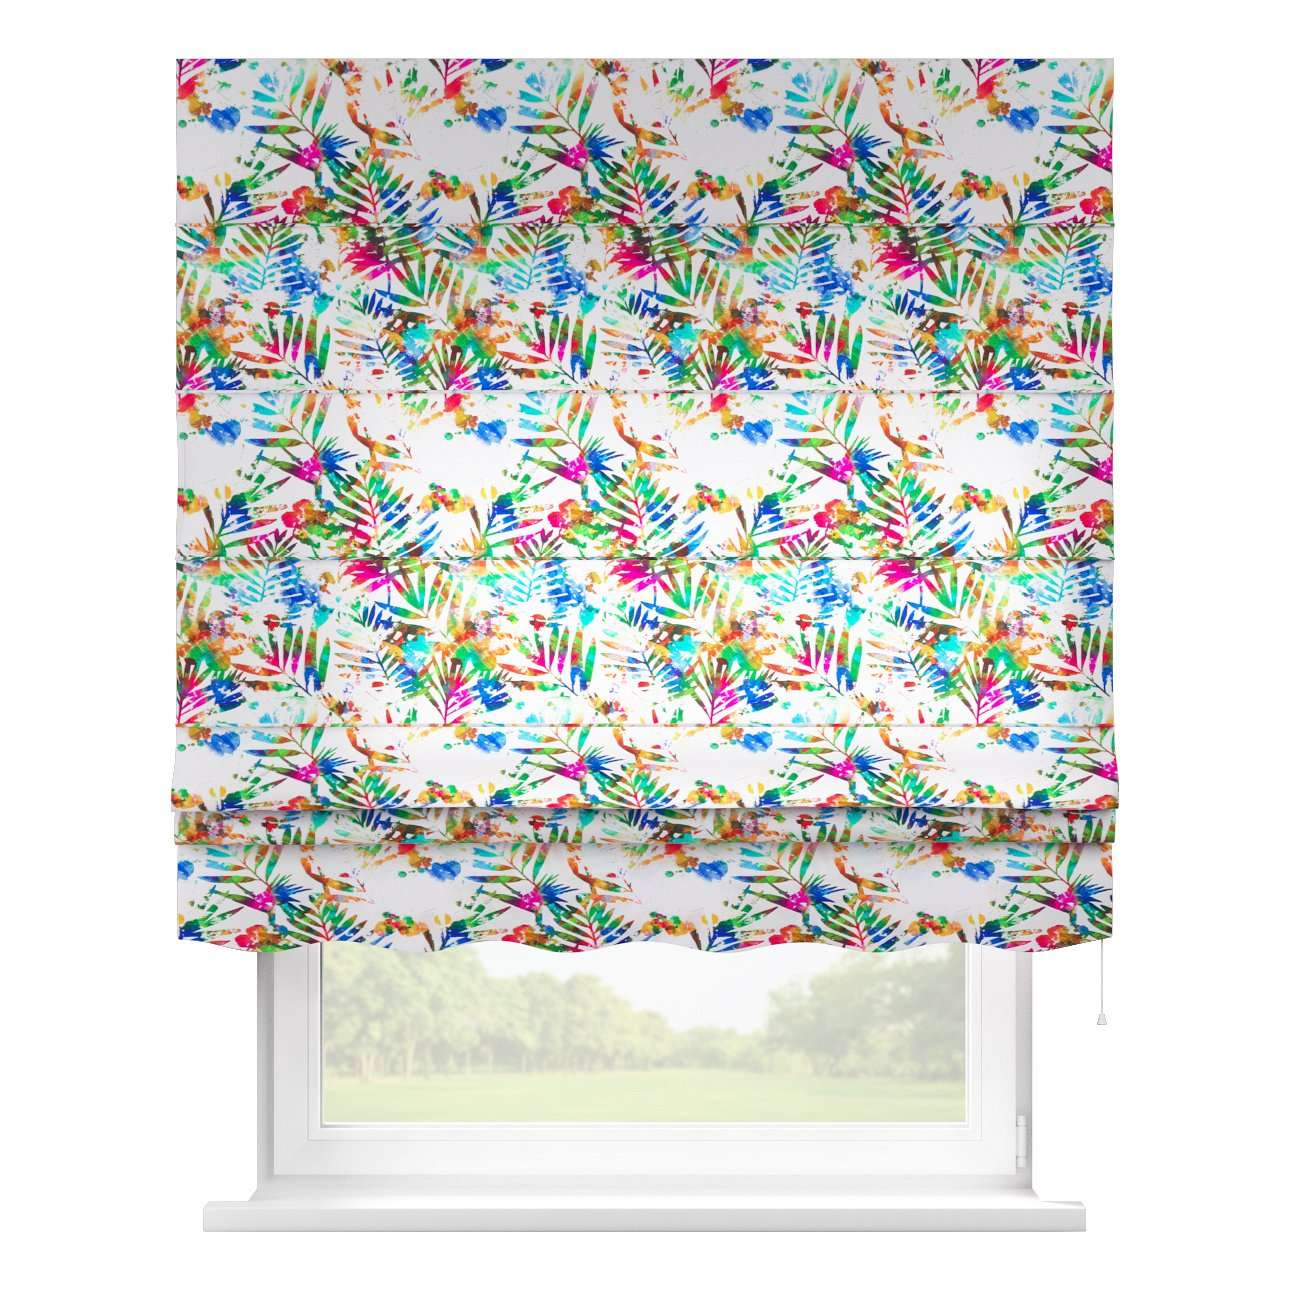 Florence roman blind  80 x 170 cm (31.5 x 67 inch) in collection New Art, fabric: 140-22